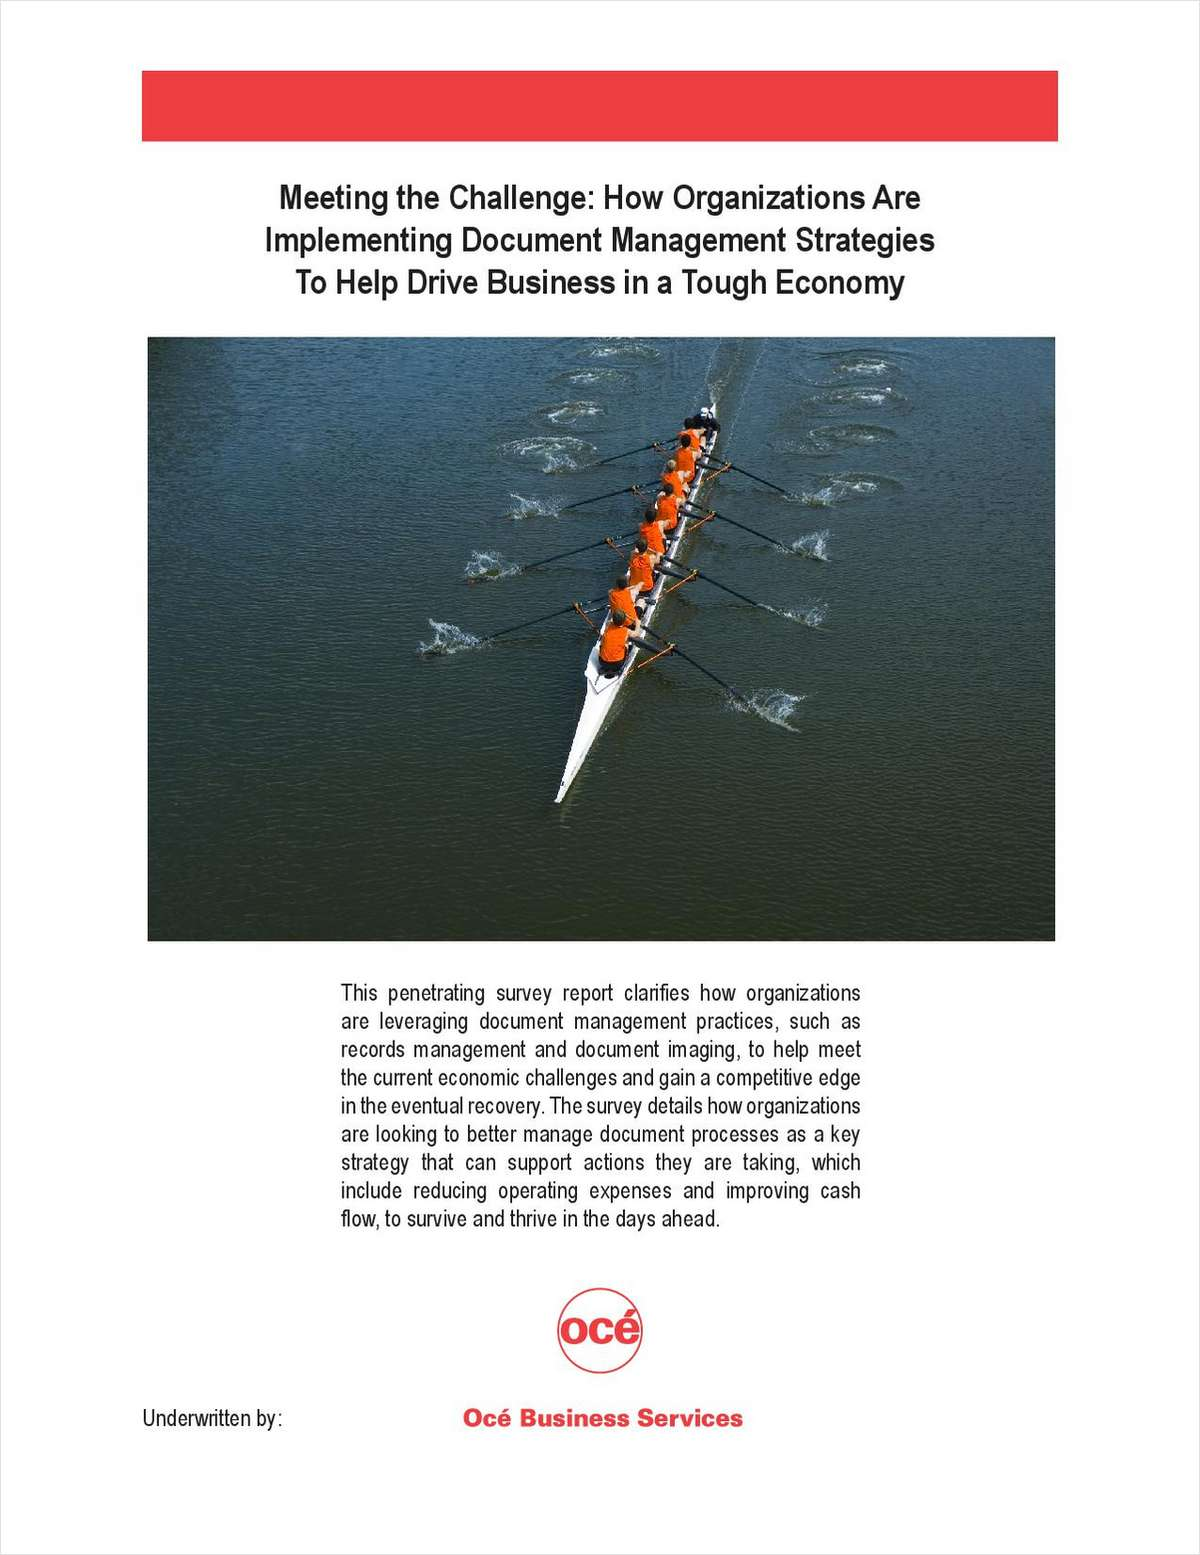 How Organizations are Implementing Document Management Strategies to Help Drive Business in a Tough Economy